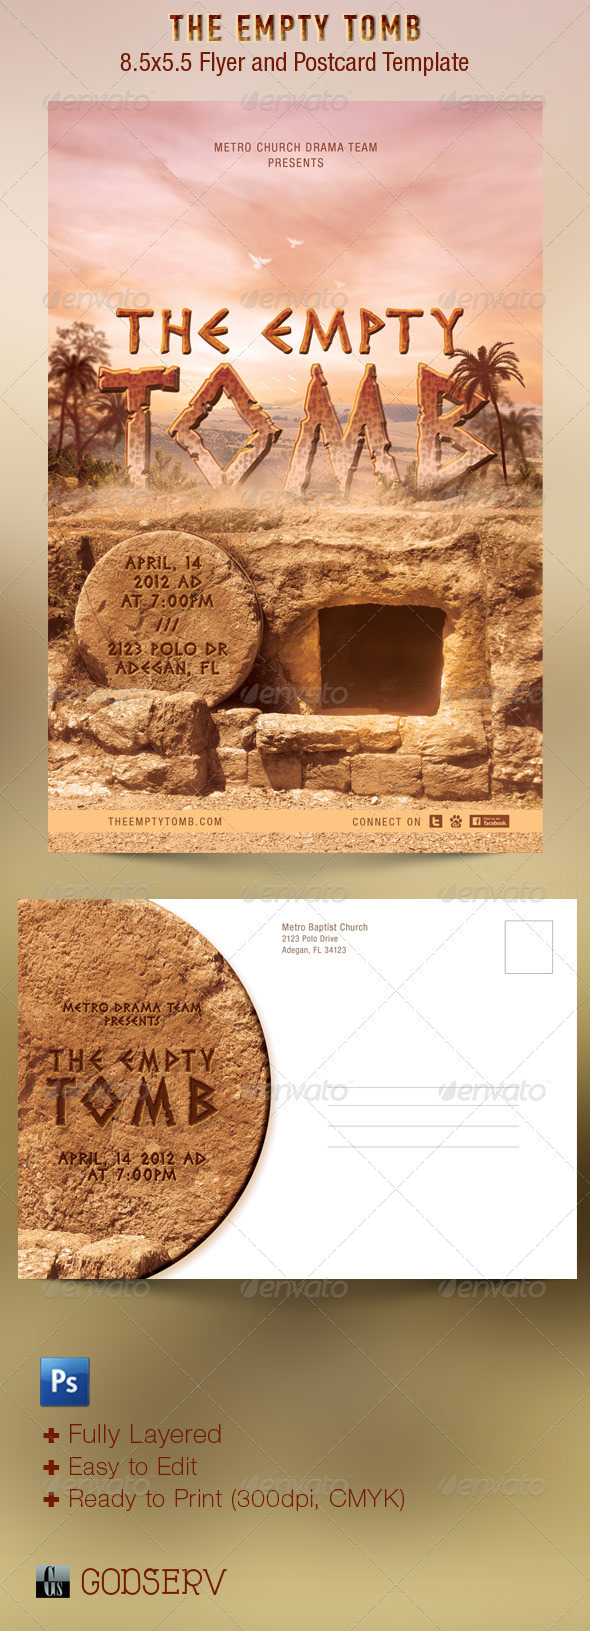 The Empty Tomb Church Flyer and Postcard Template - Church Flyers